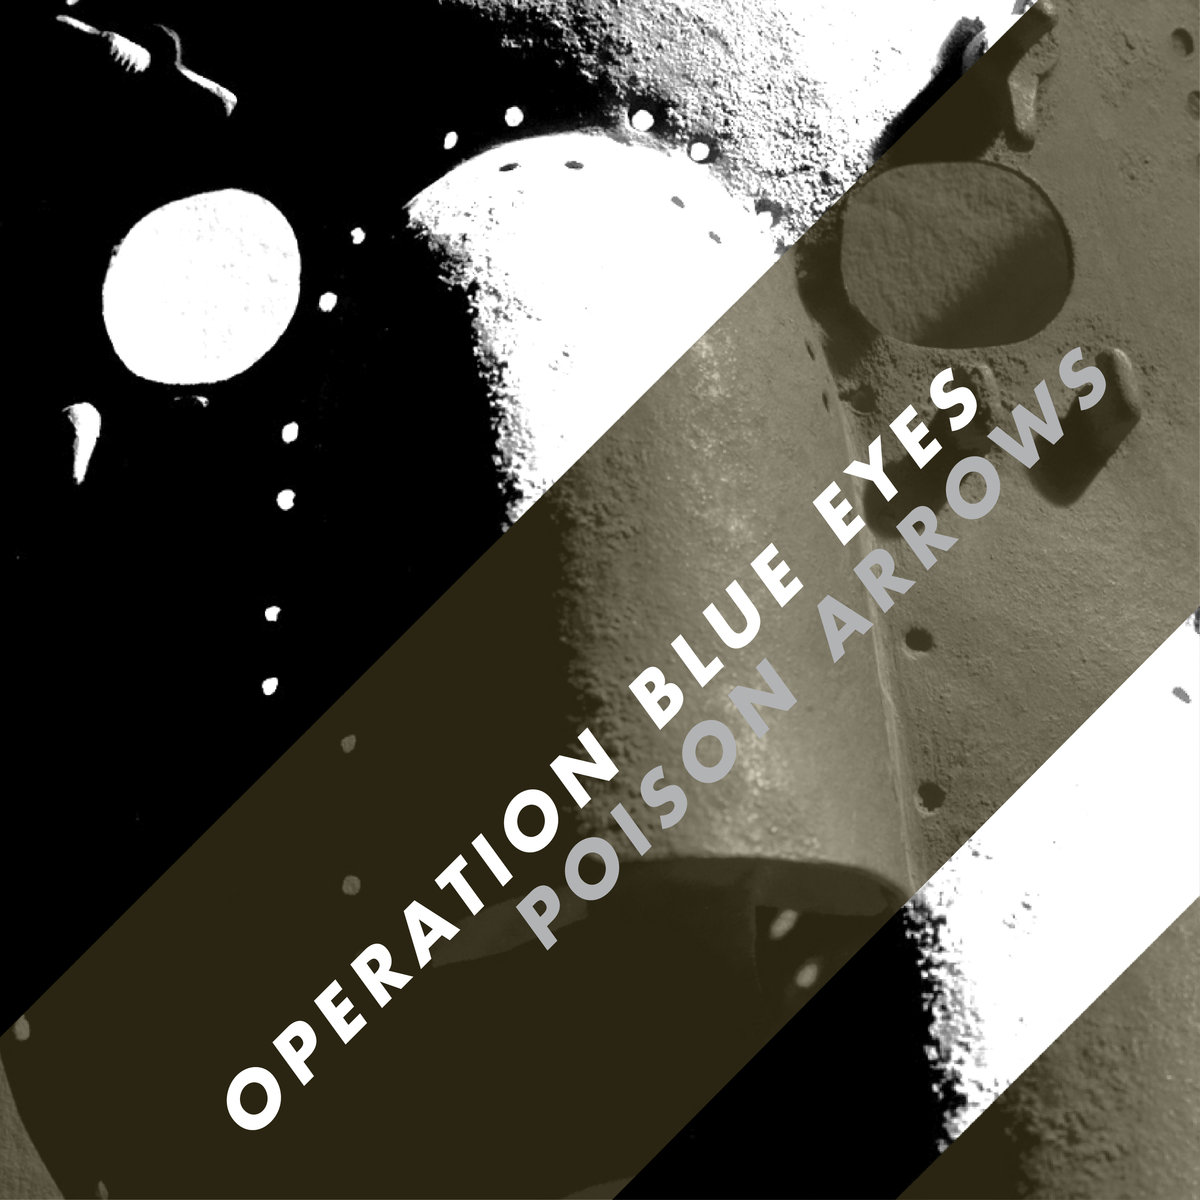 Observer: Pedestrian Deposit & Operation Blue Eyes